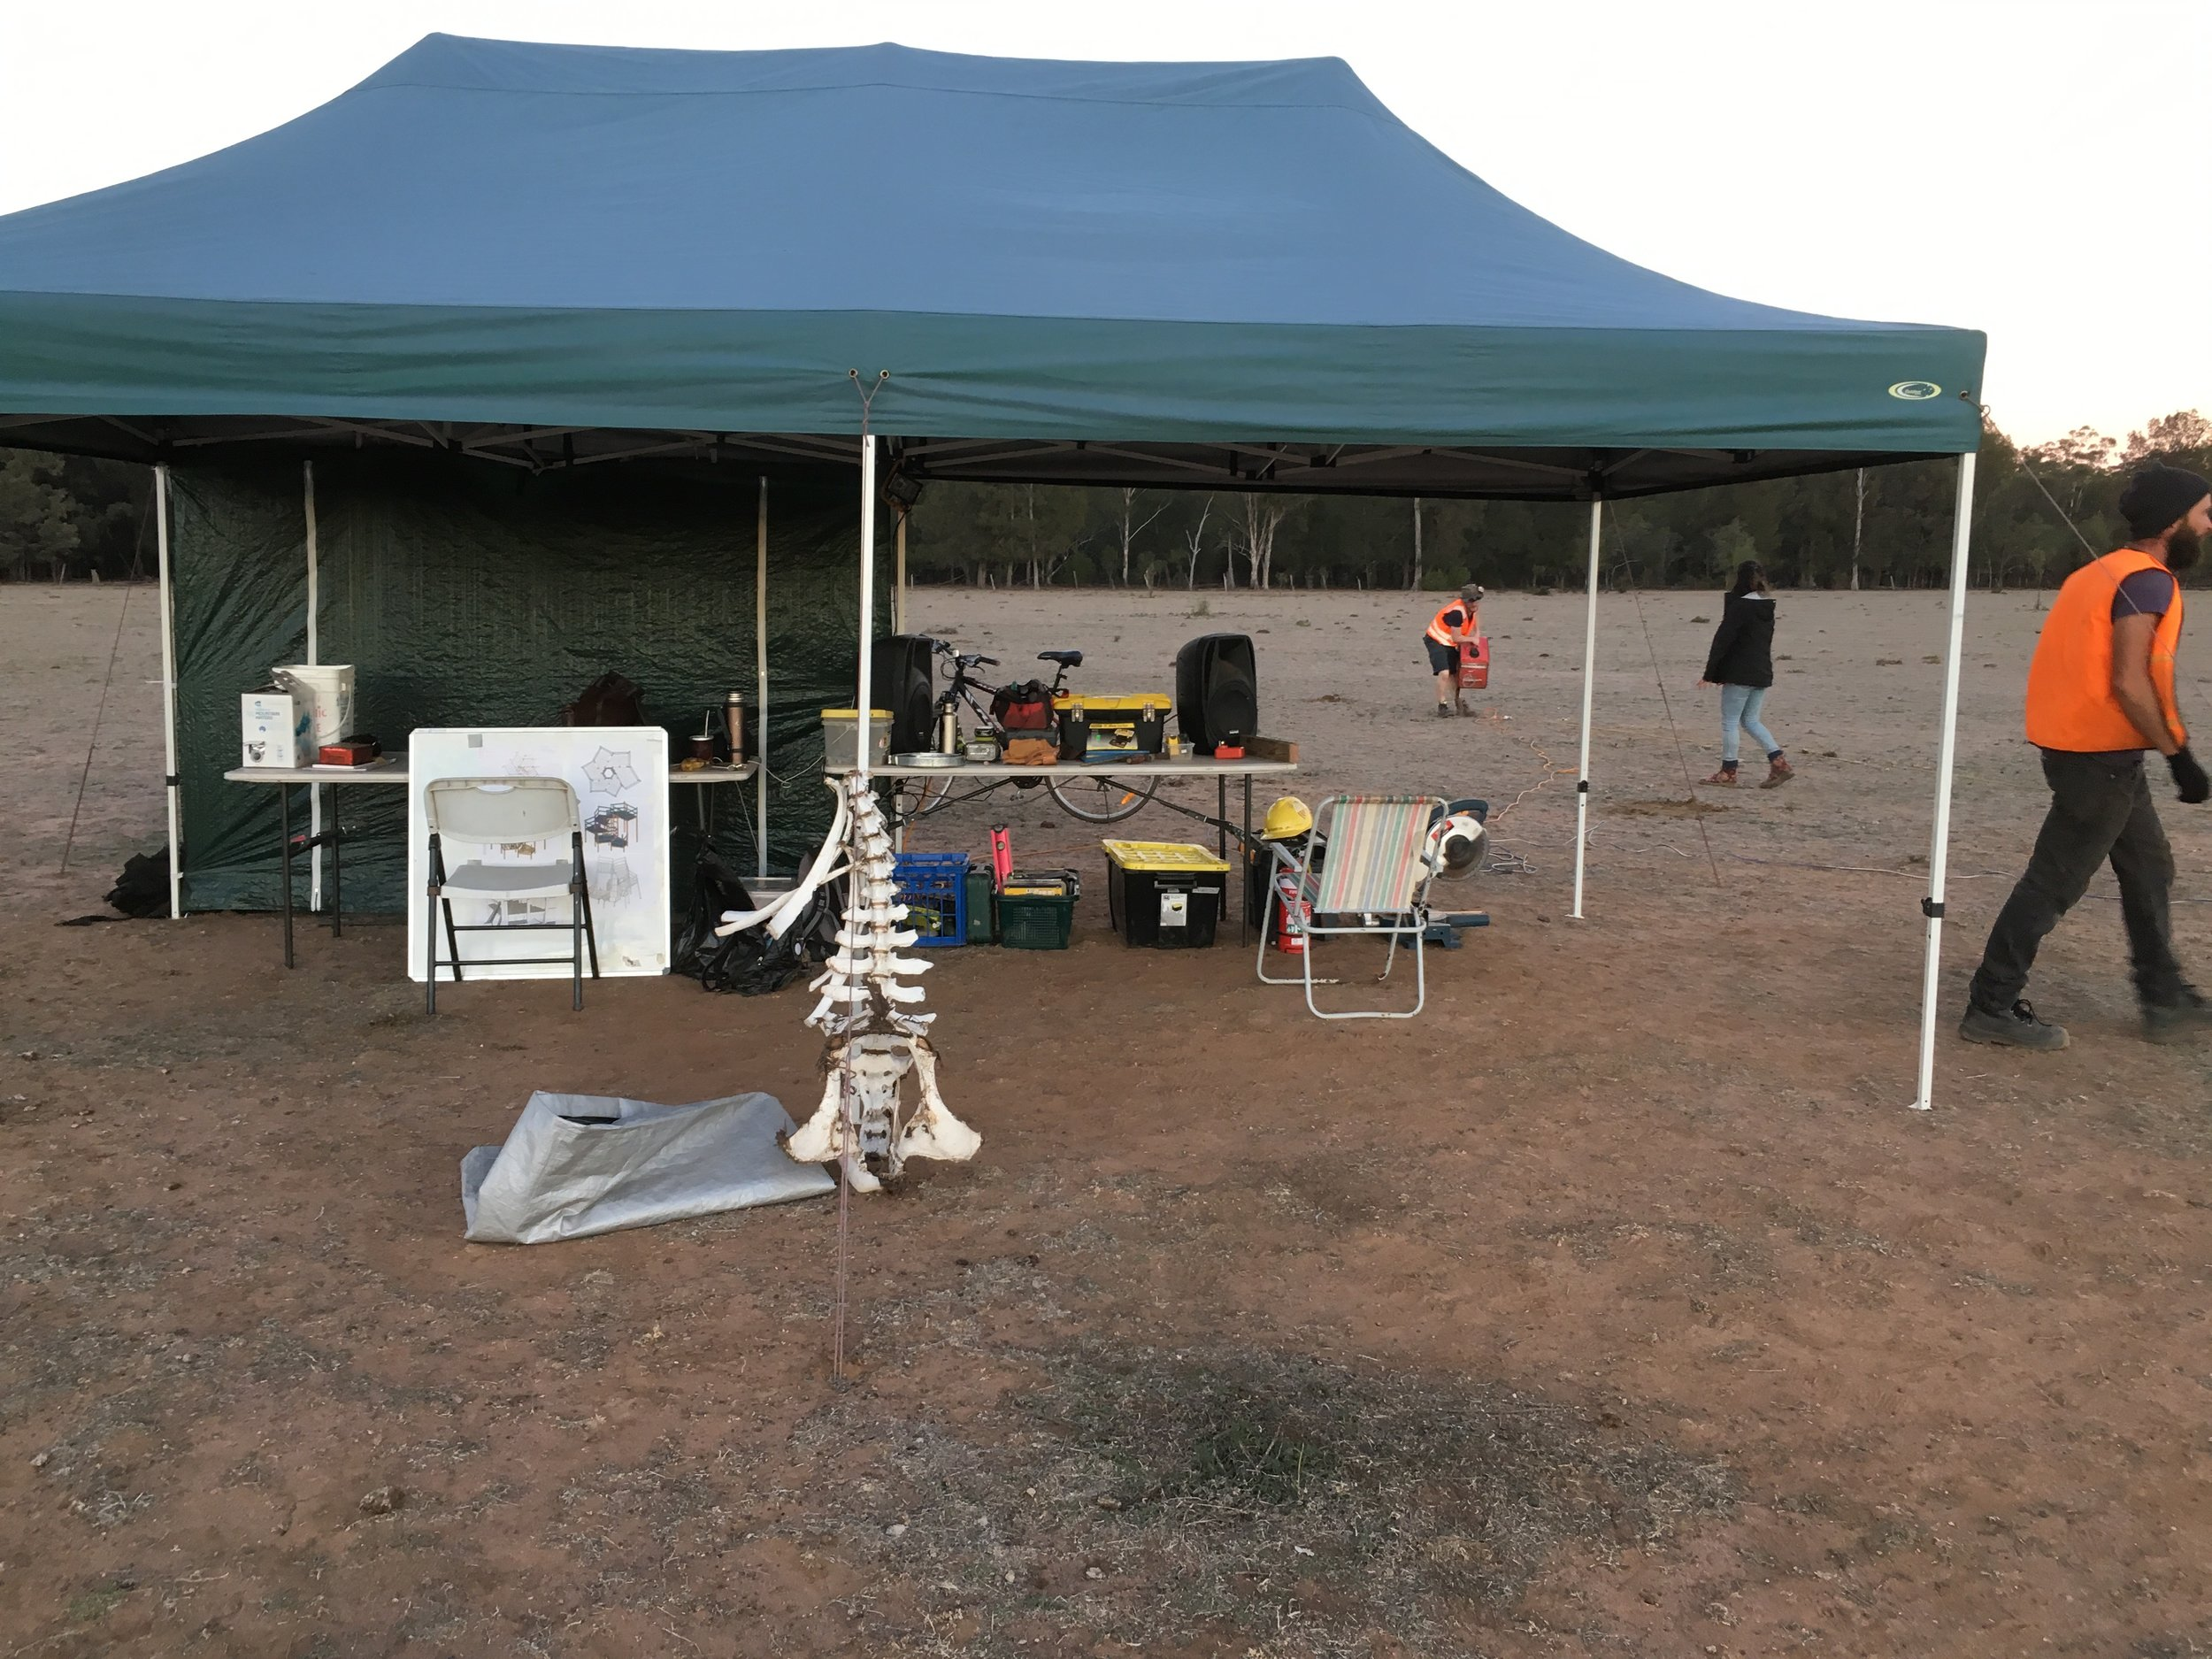 A more secure marquee, music to drown out the generator, and kangaroo bones to ward off the westerlies.